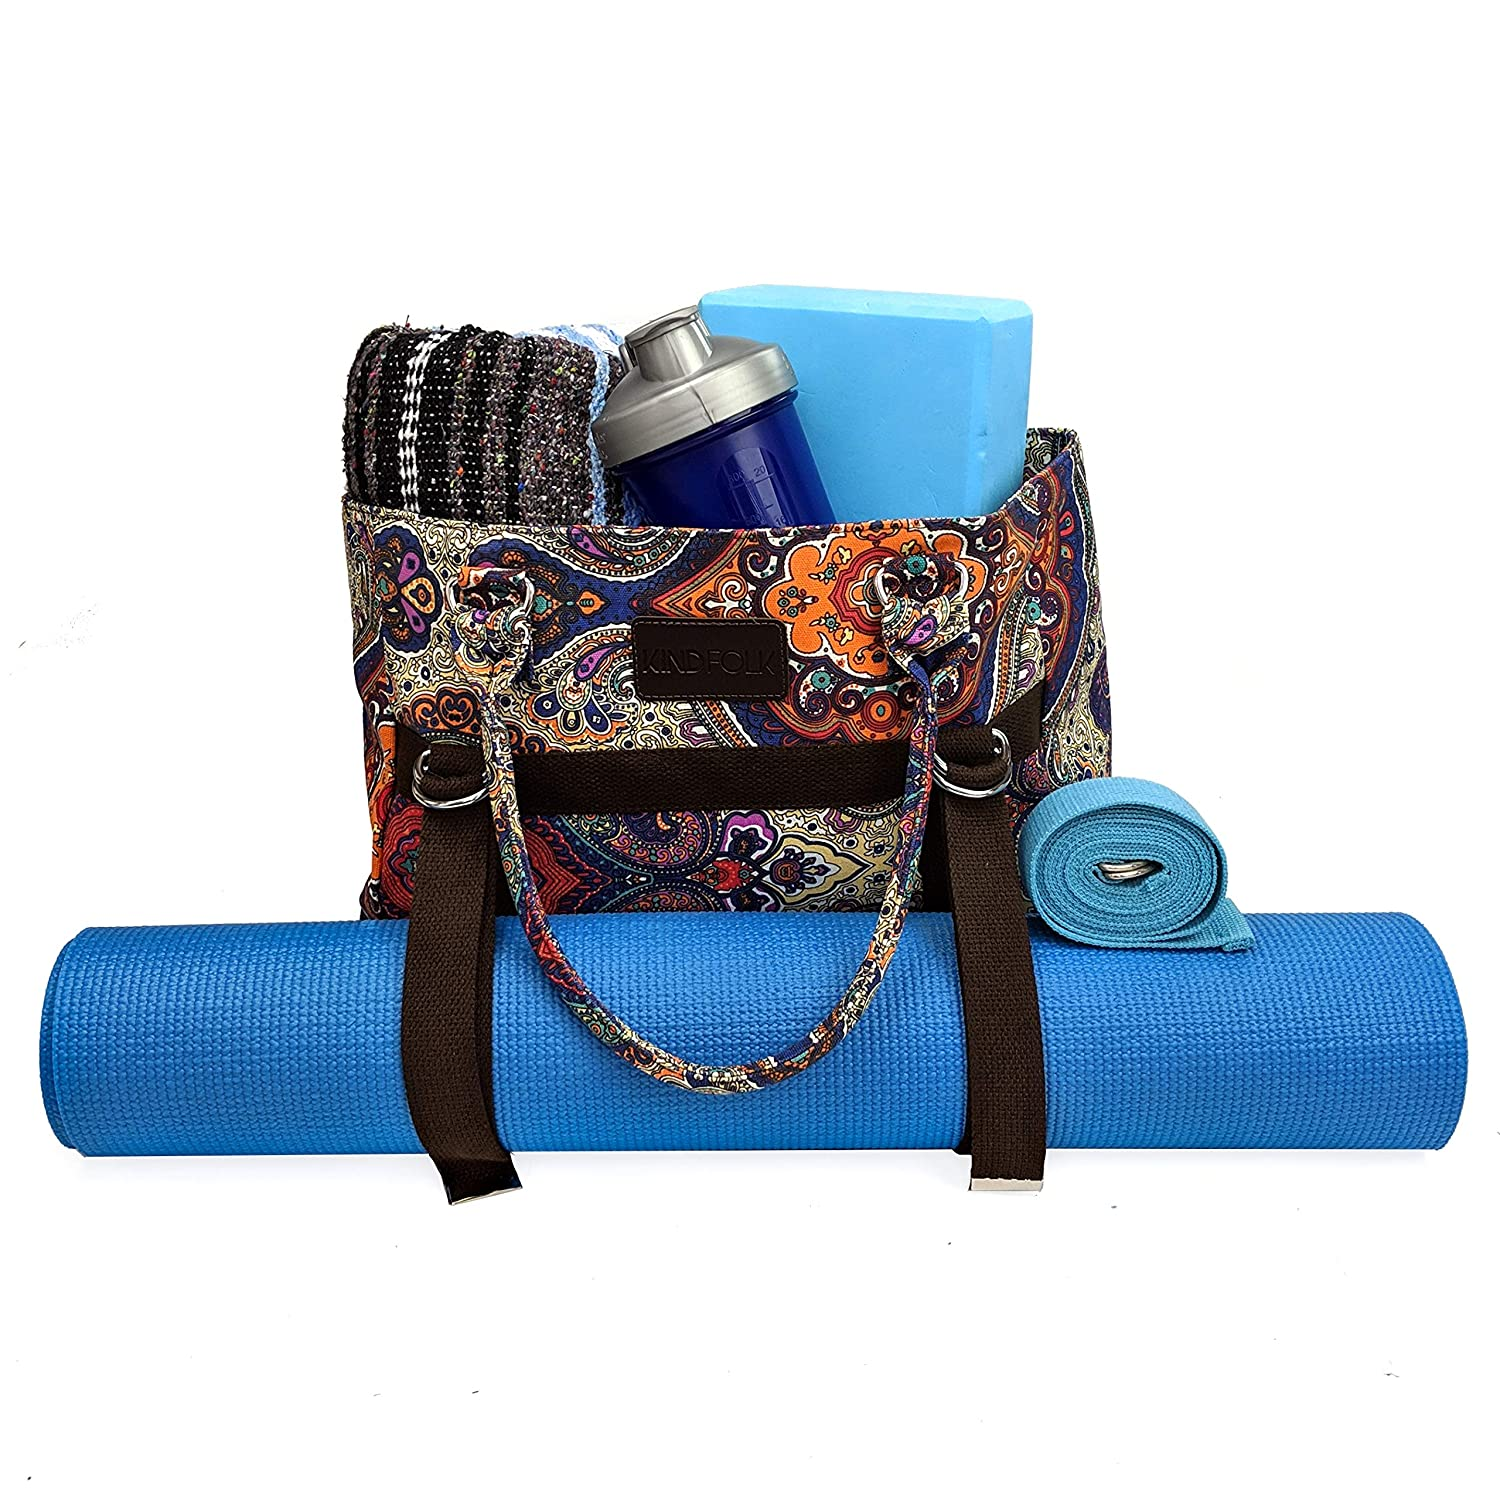 Kindfolk Yoga Mat Bag Tote Carrier with Three Pockets and Zipper Top